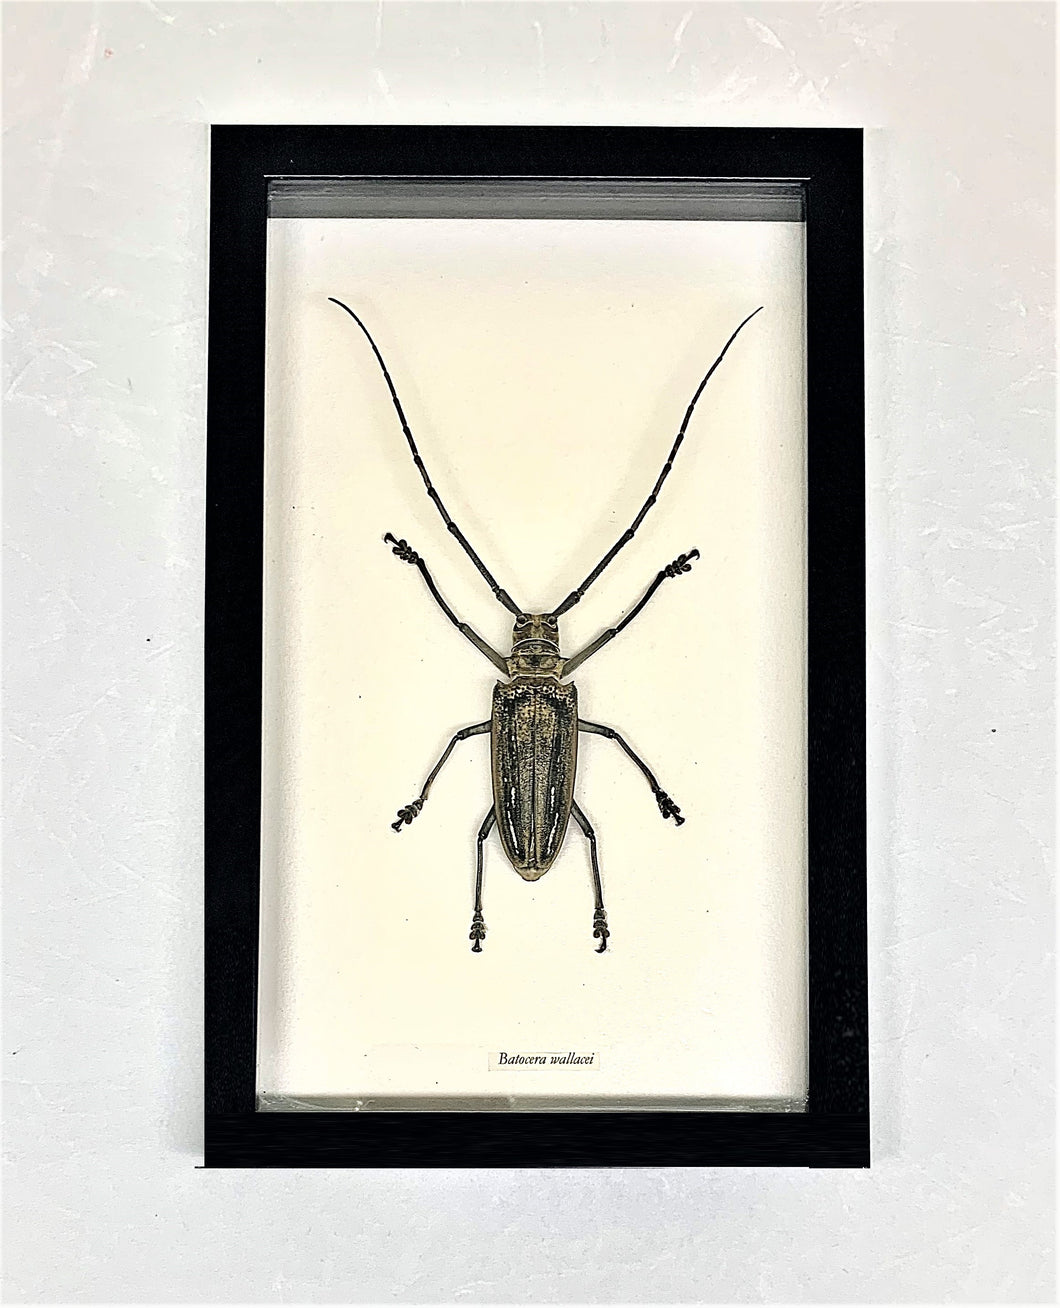 A beetle in a glass case with a white background and a black wooden frame.